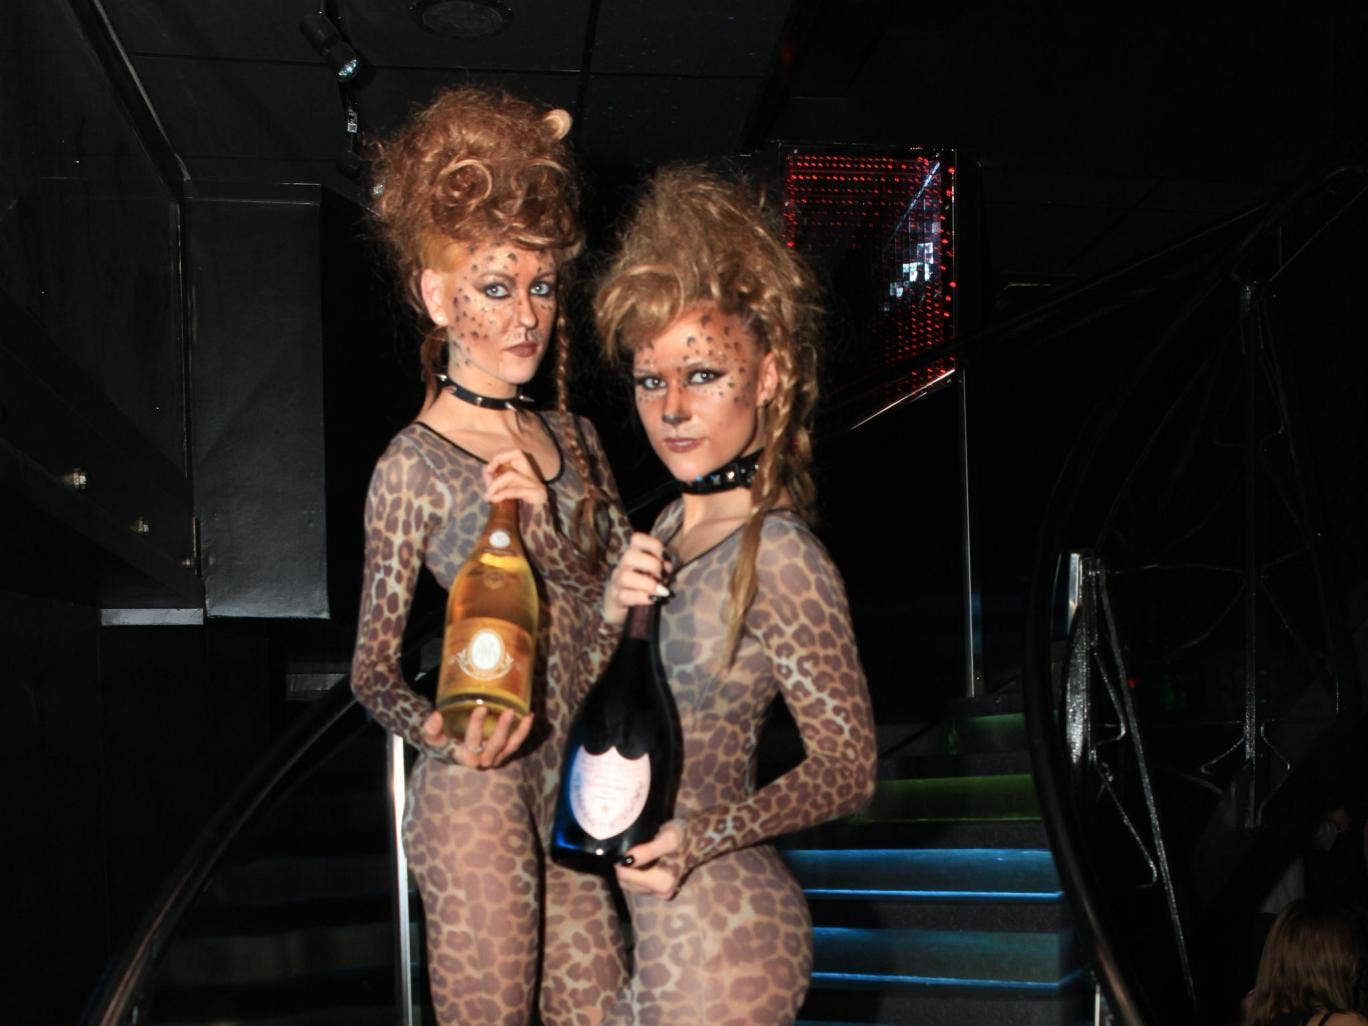 Waitresses at Kitsch nightclub hold bottles of champagne